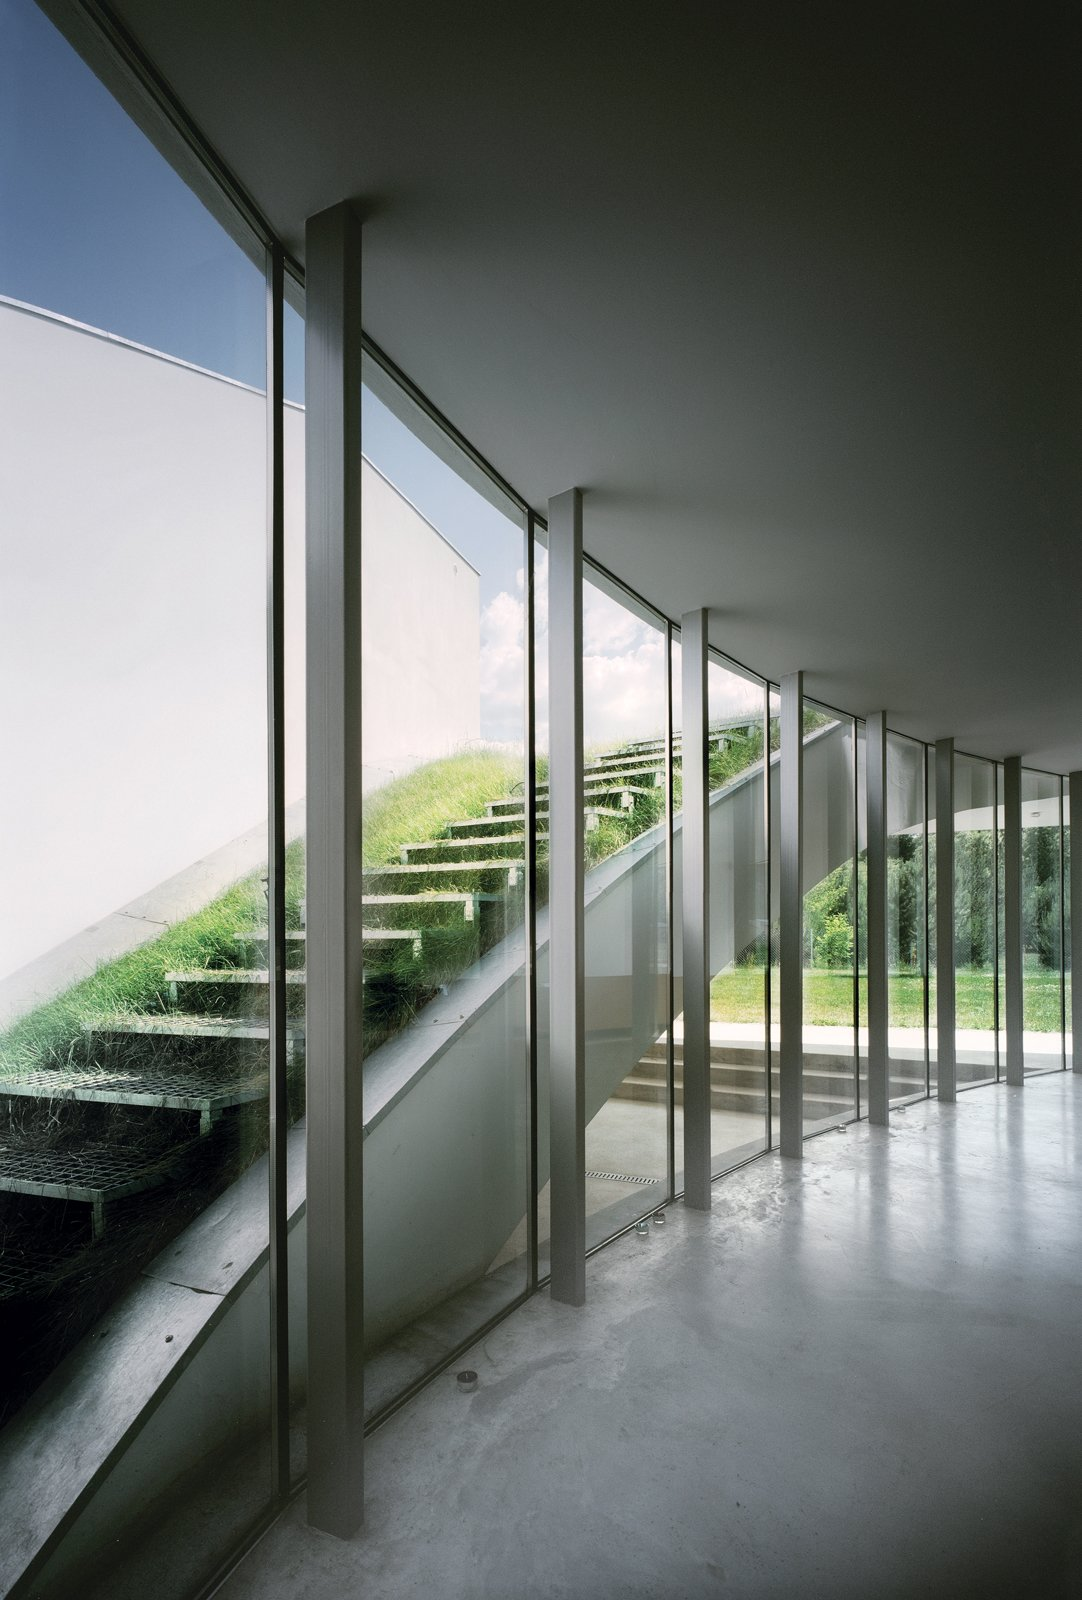 The expansive open-air living room on the first floor is framed with a curving wall of windows. The glass wall works as an outdoor atrium looking out on an exposed   sod-covered staircase and allows the room to be bathed in natural light.  190+ Best Modern Staircase Ideas by Dwell from Modernist Rural Getaway in Poland